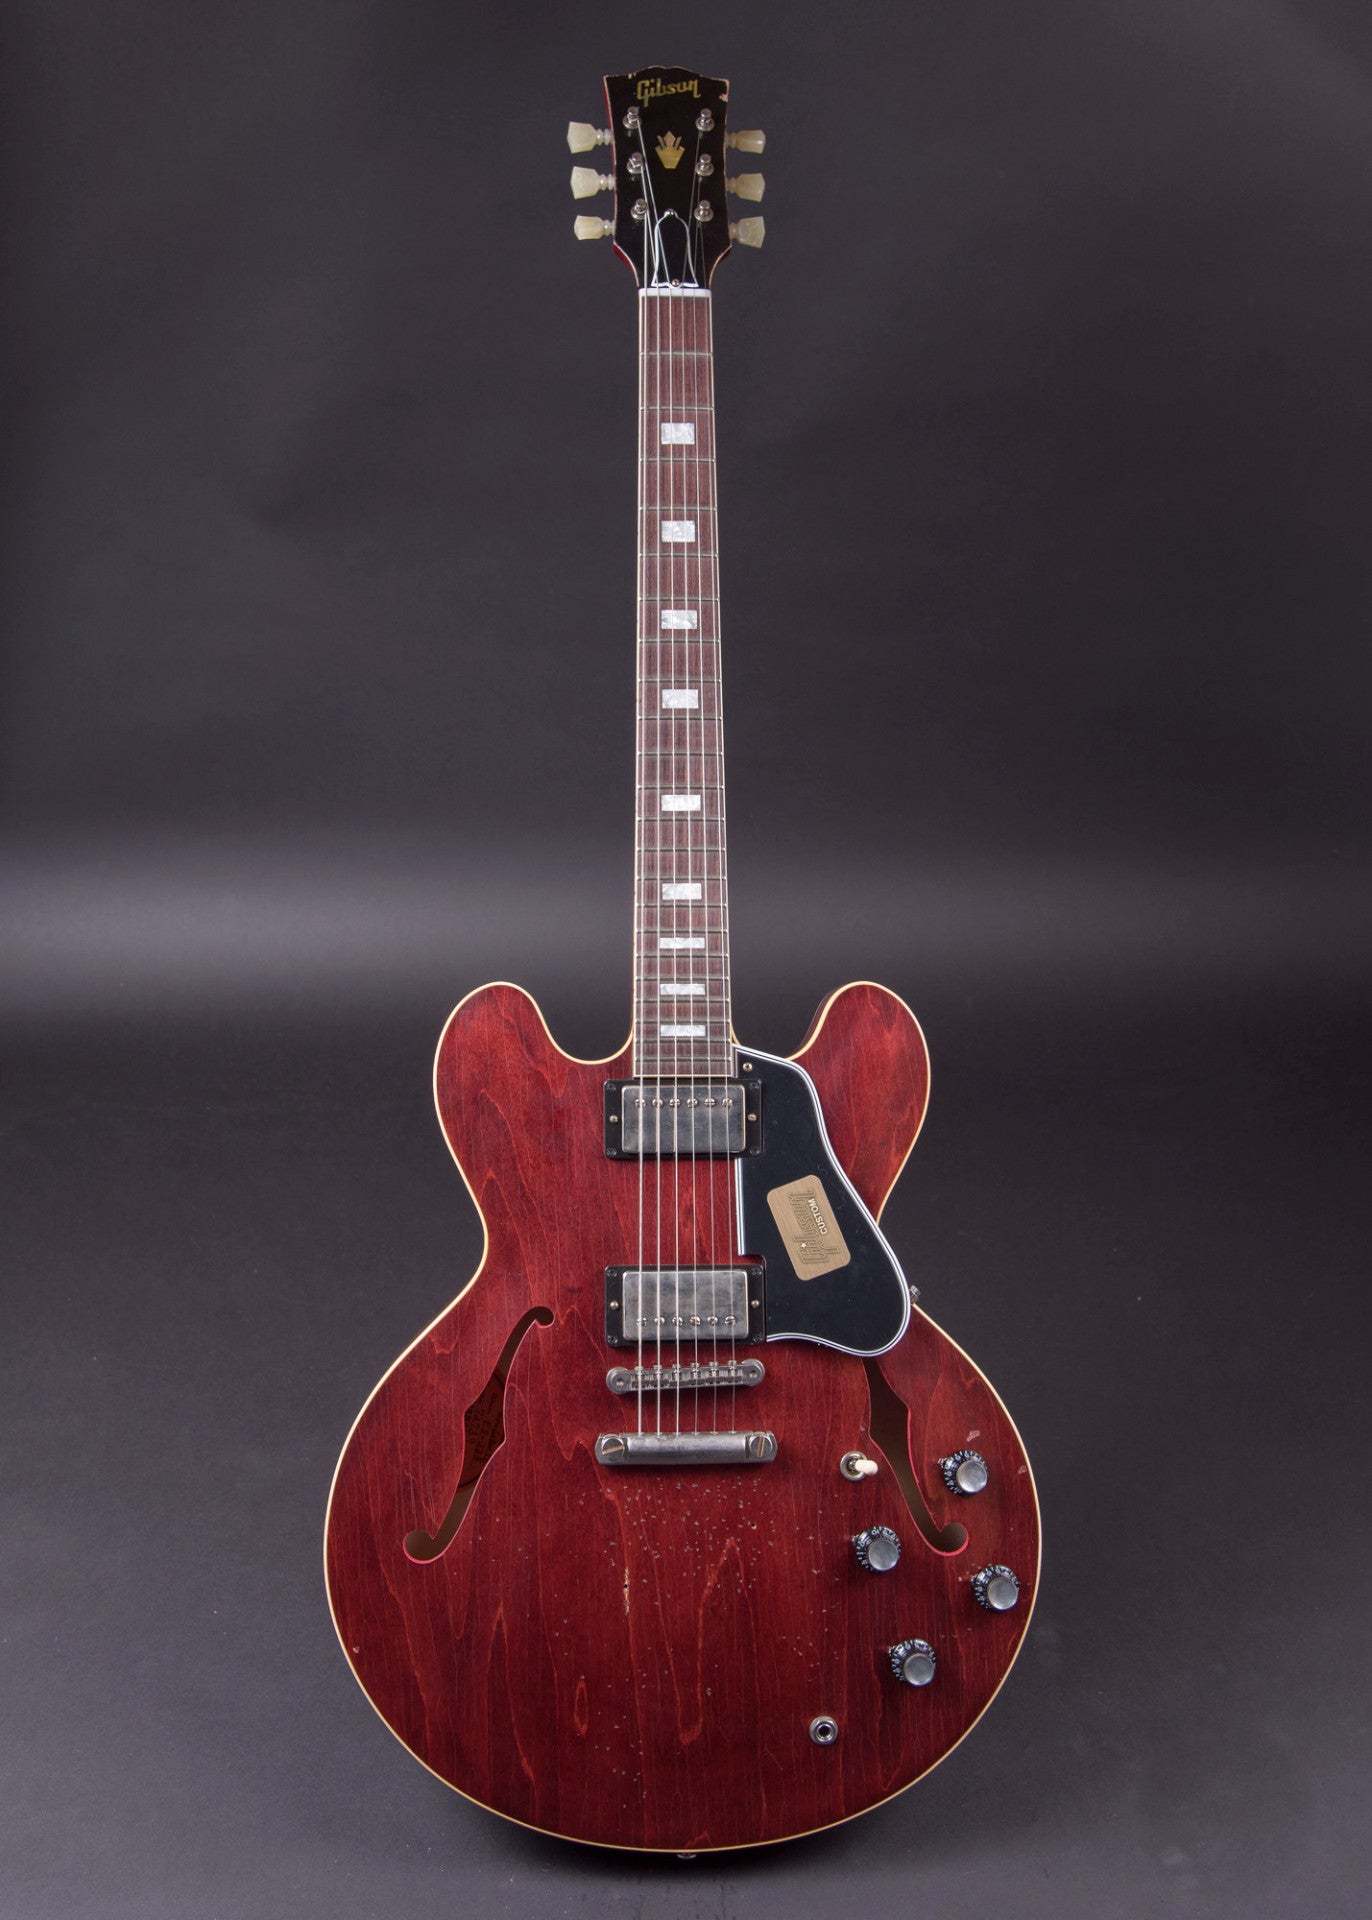 Gibson Custom Shop Collector's Choice #42 JD Simo ES-335